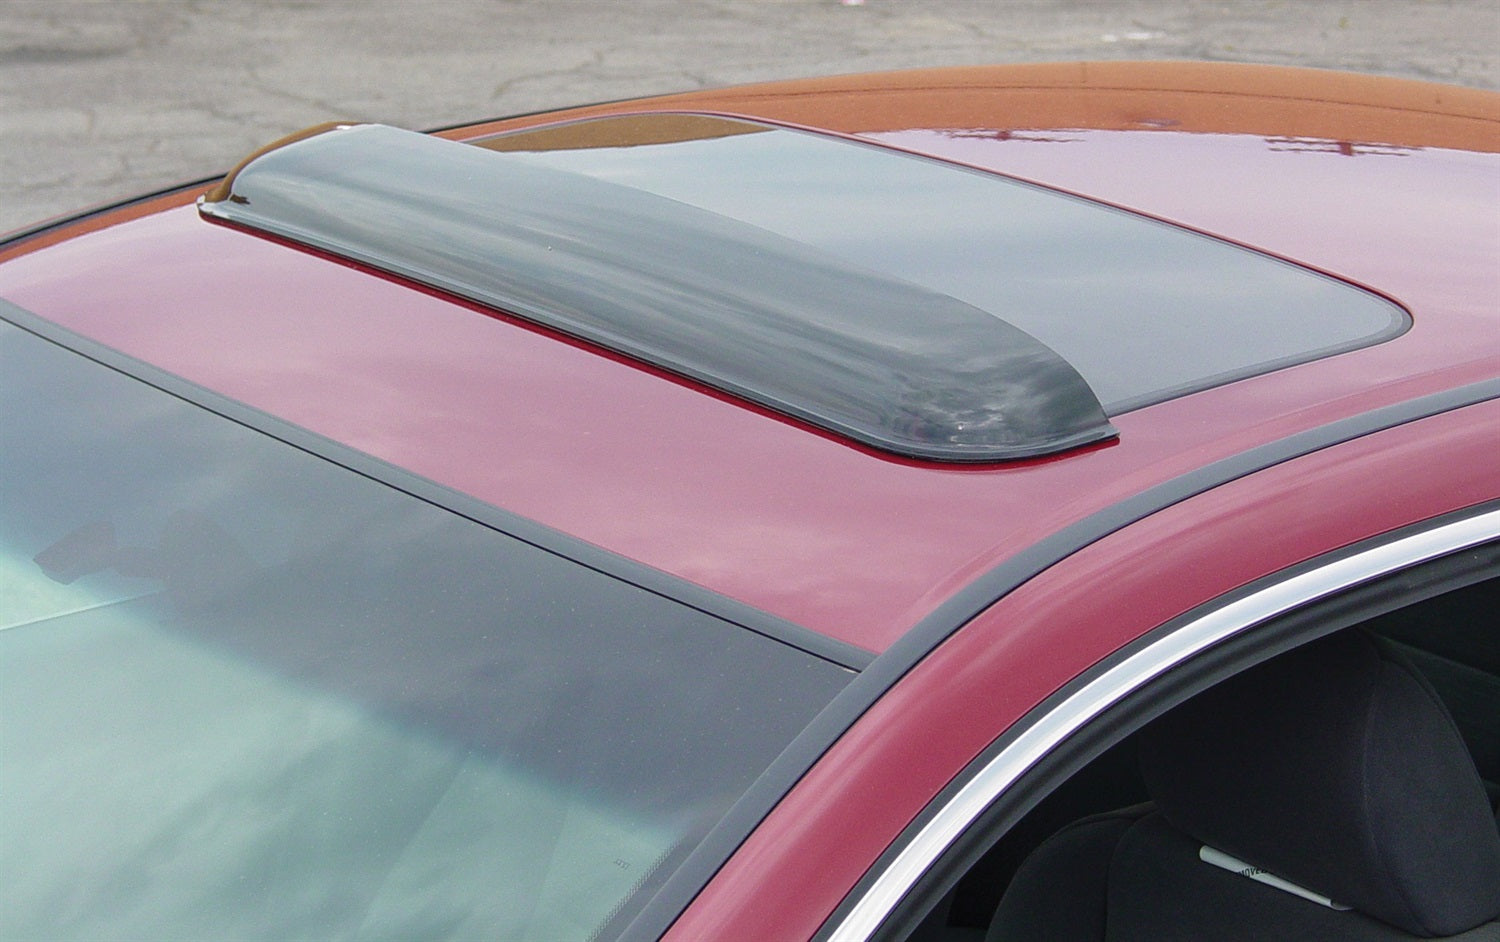 1994 Ford Escort Sunroof Wind Deflector